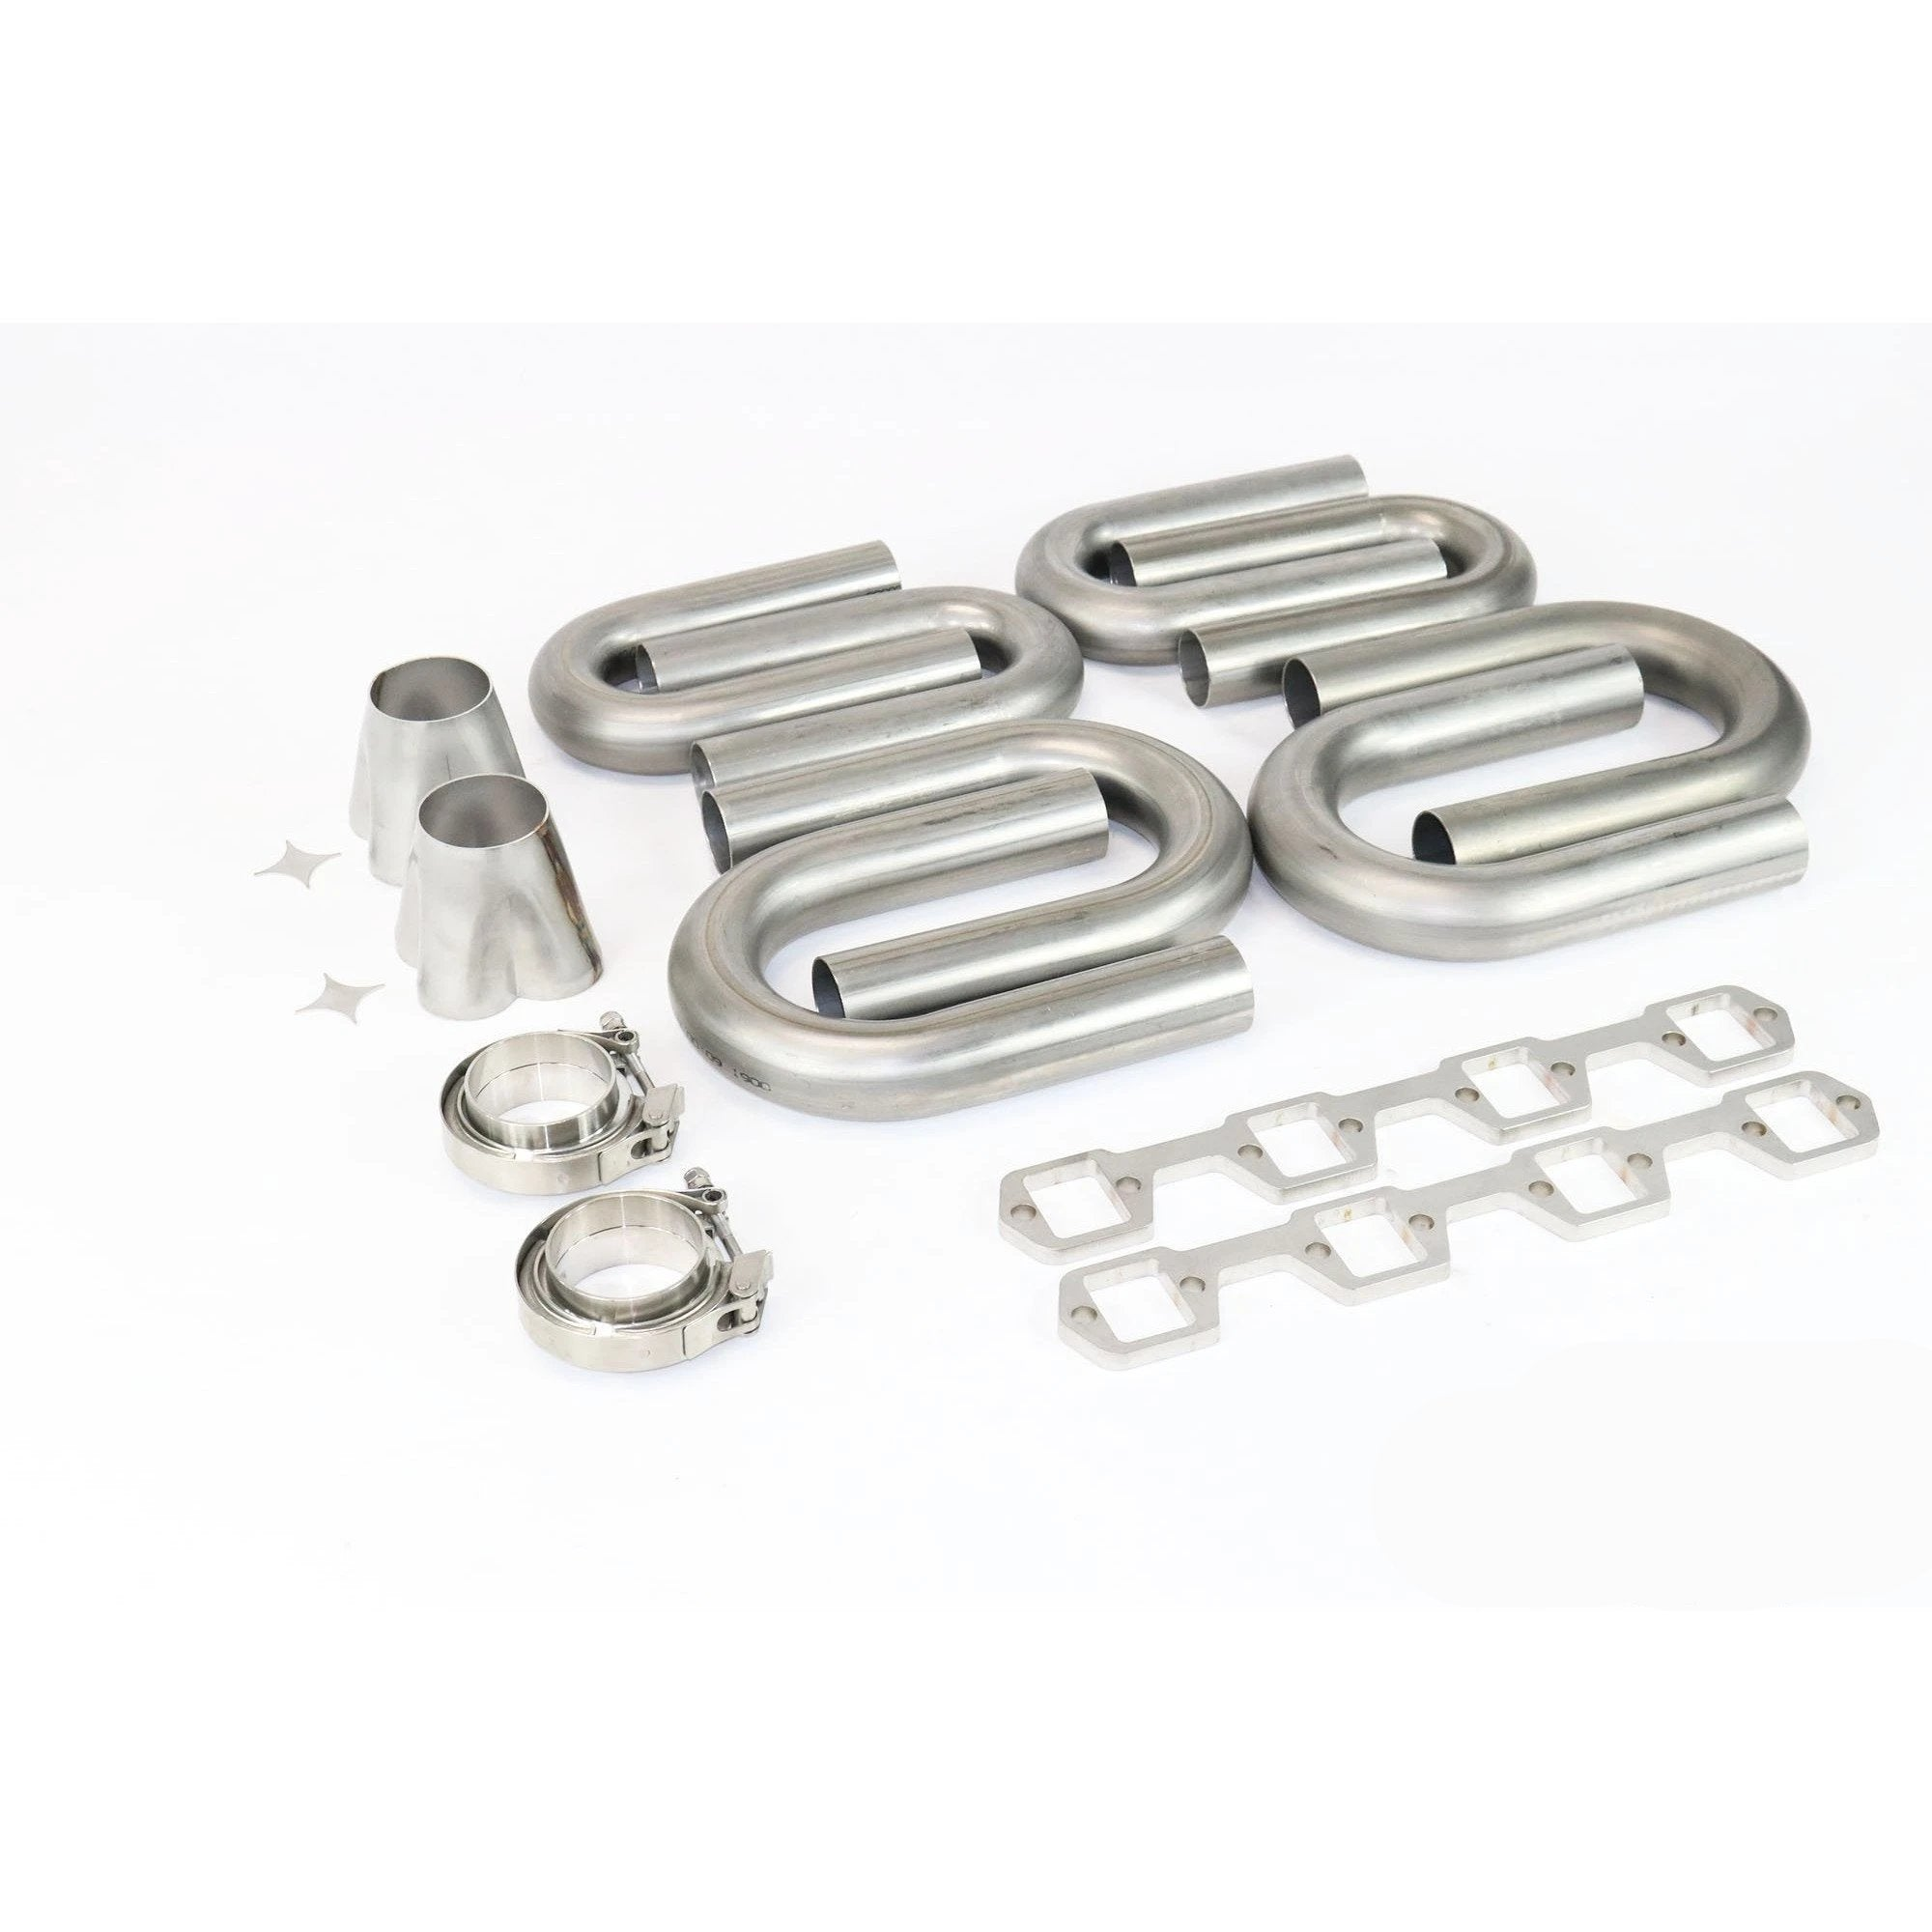 Ford SBF Windsor 304 Stainless Turbo Header Build Kit - Motion Raceworks